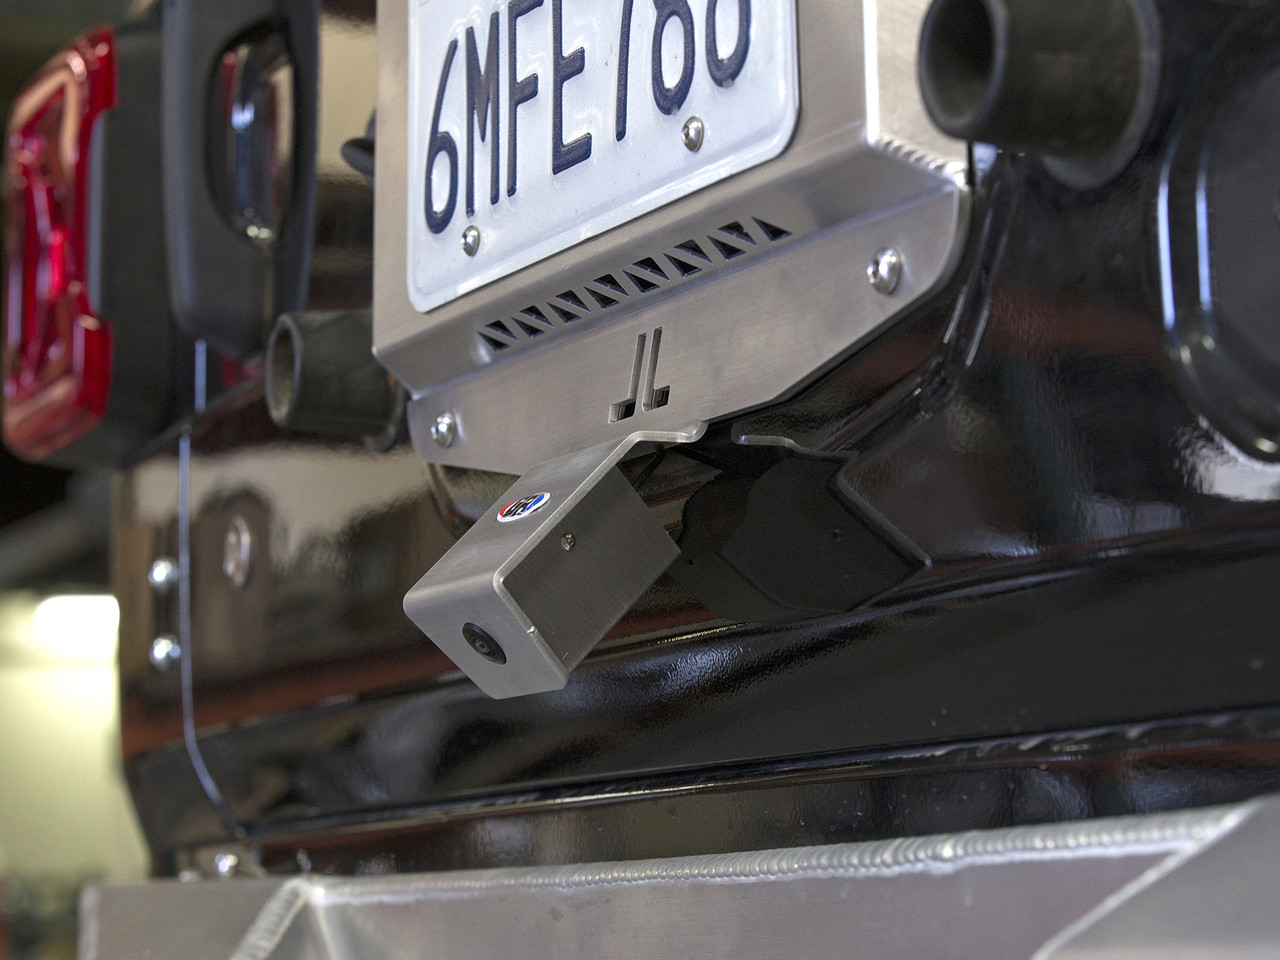 JL Rear view camera mount with GenRight tail gate plate (shown with optional tail gate plate)